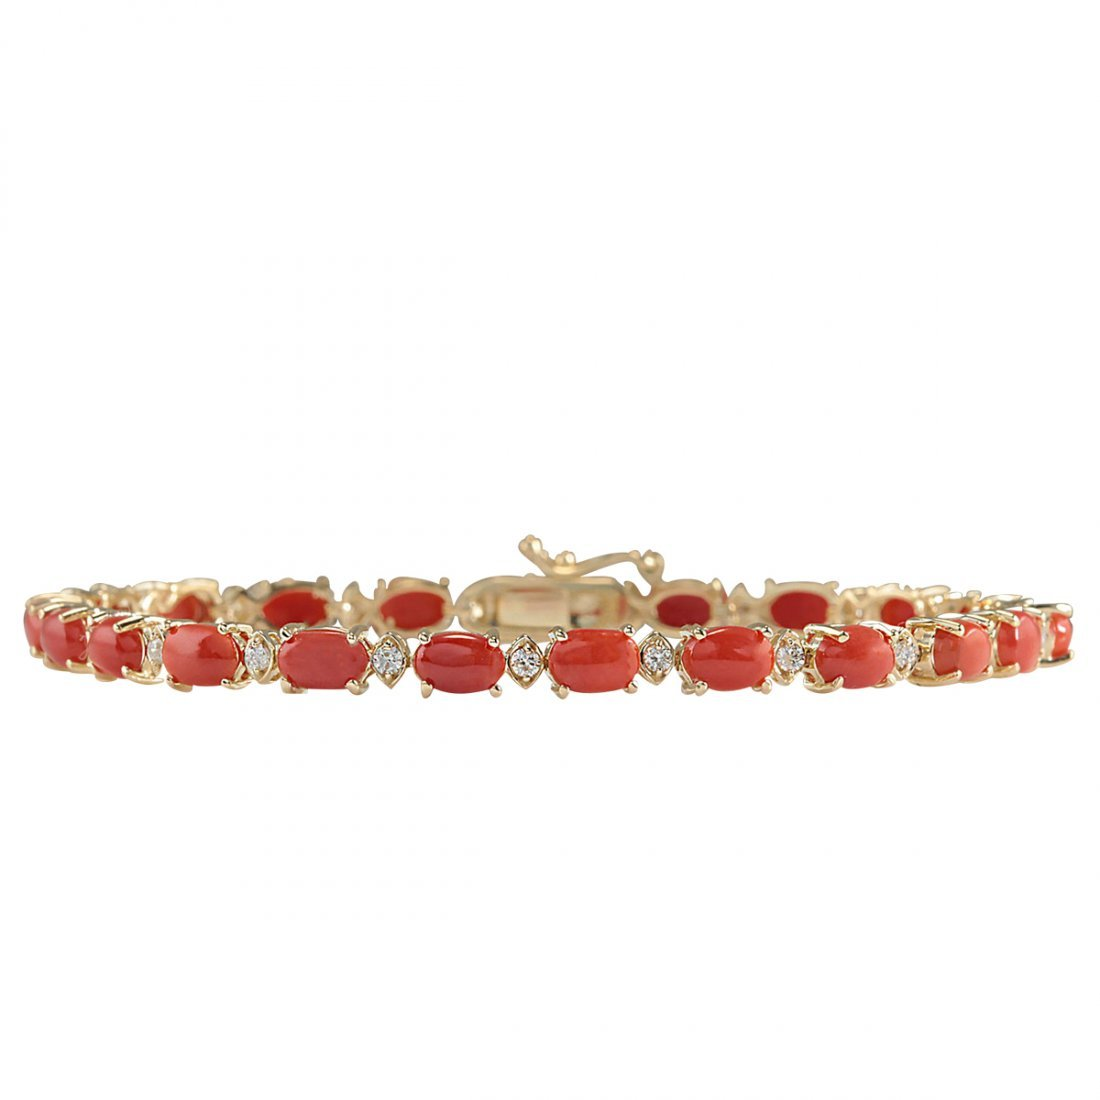 8.77CTW Natural Red Coral And Diamond Bracelet In 14K